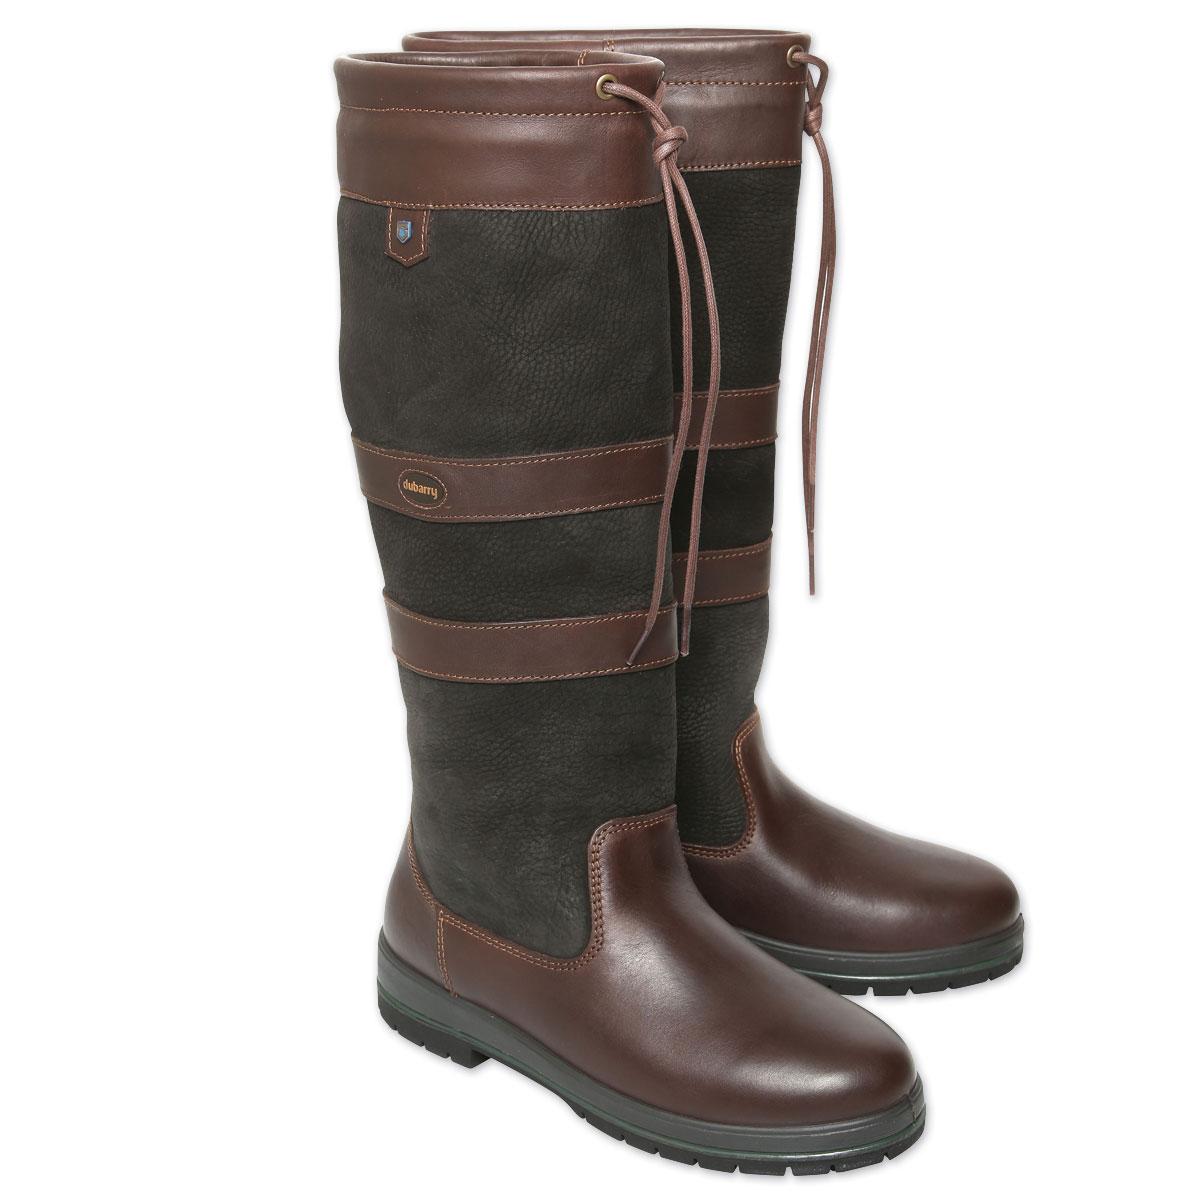 c8bf8068683d5 Dubarry Galway Boot